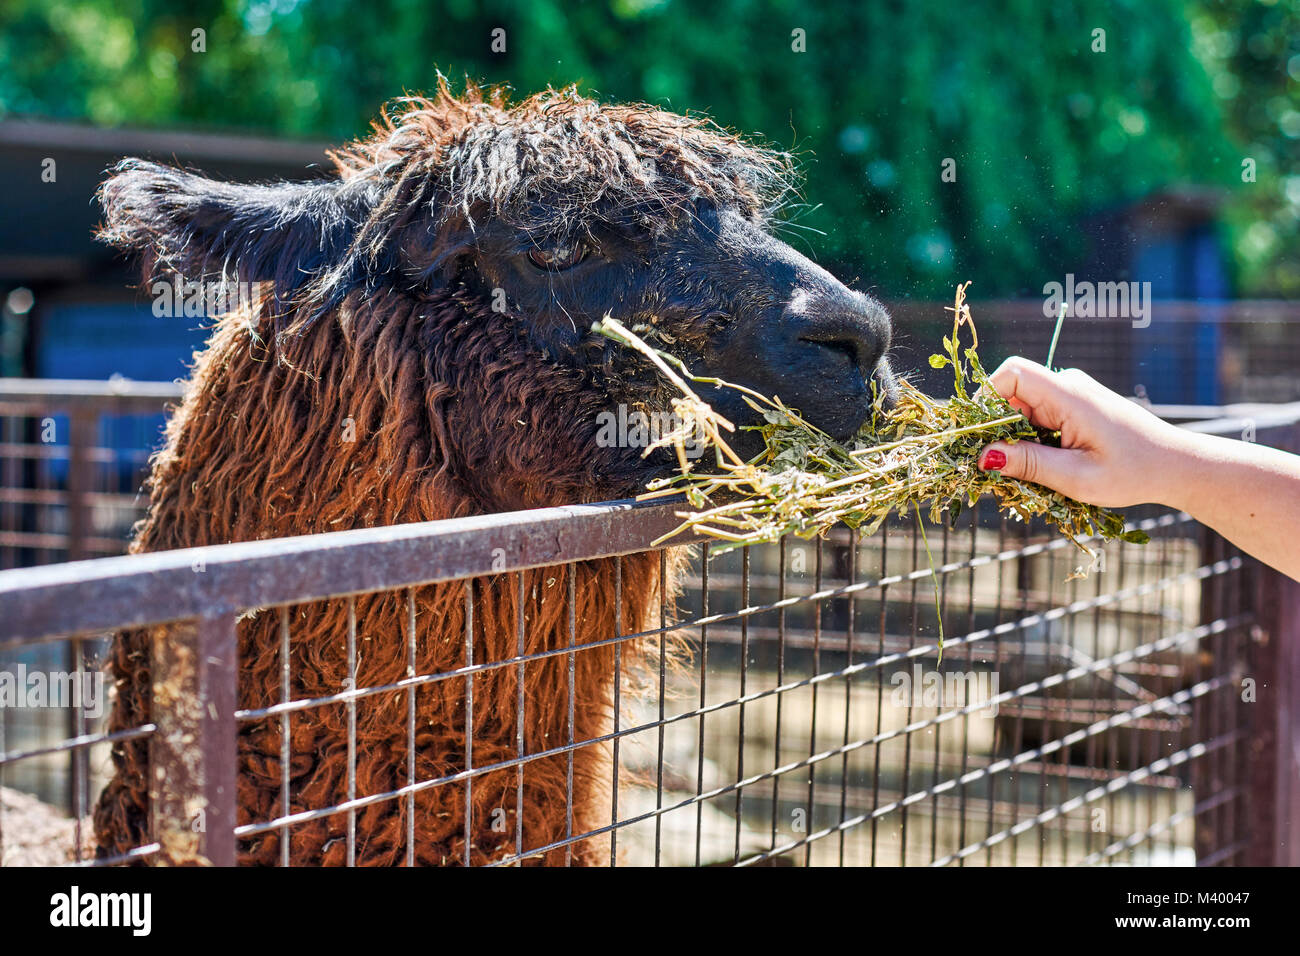 Cute llama in the corral being fed by a person during a visit to a farm in Argentina. - Stock Image